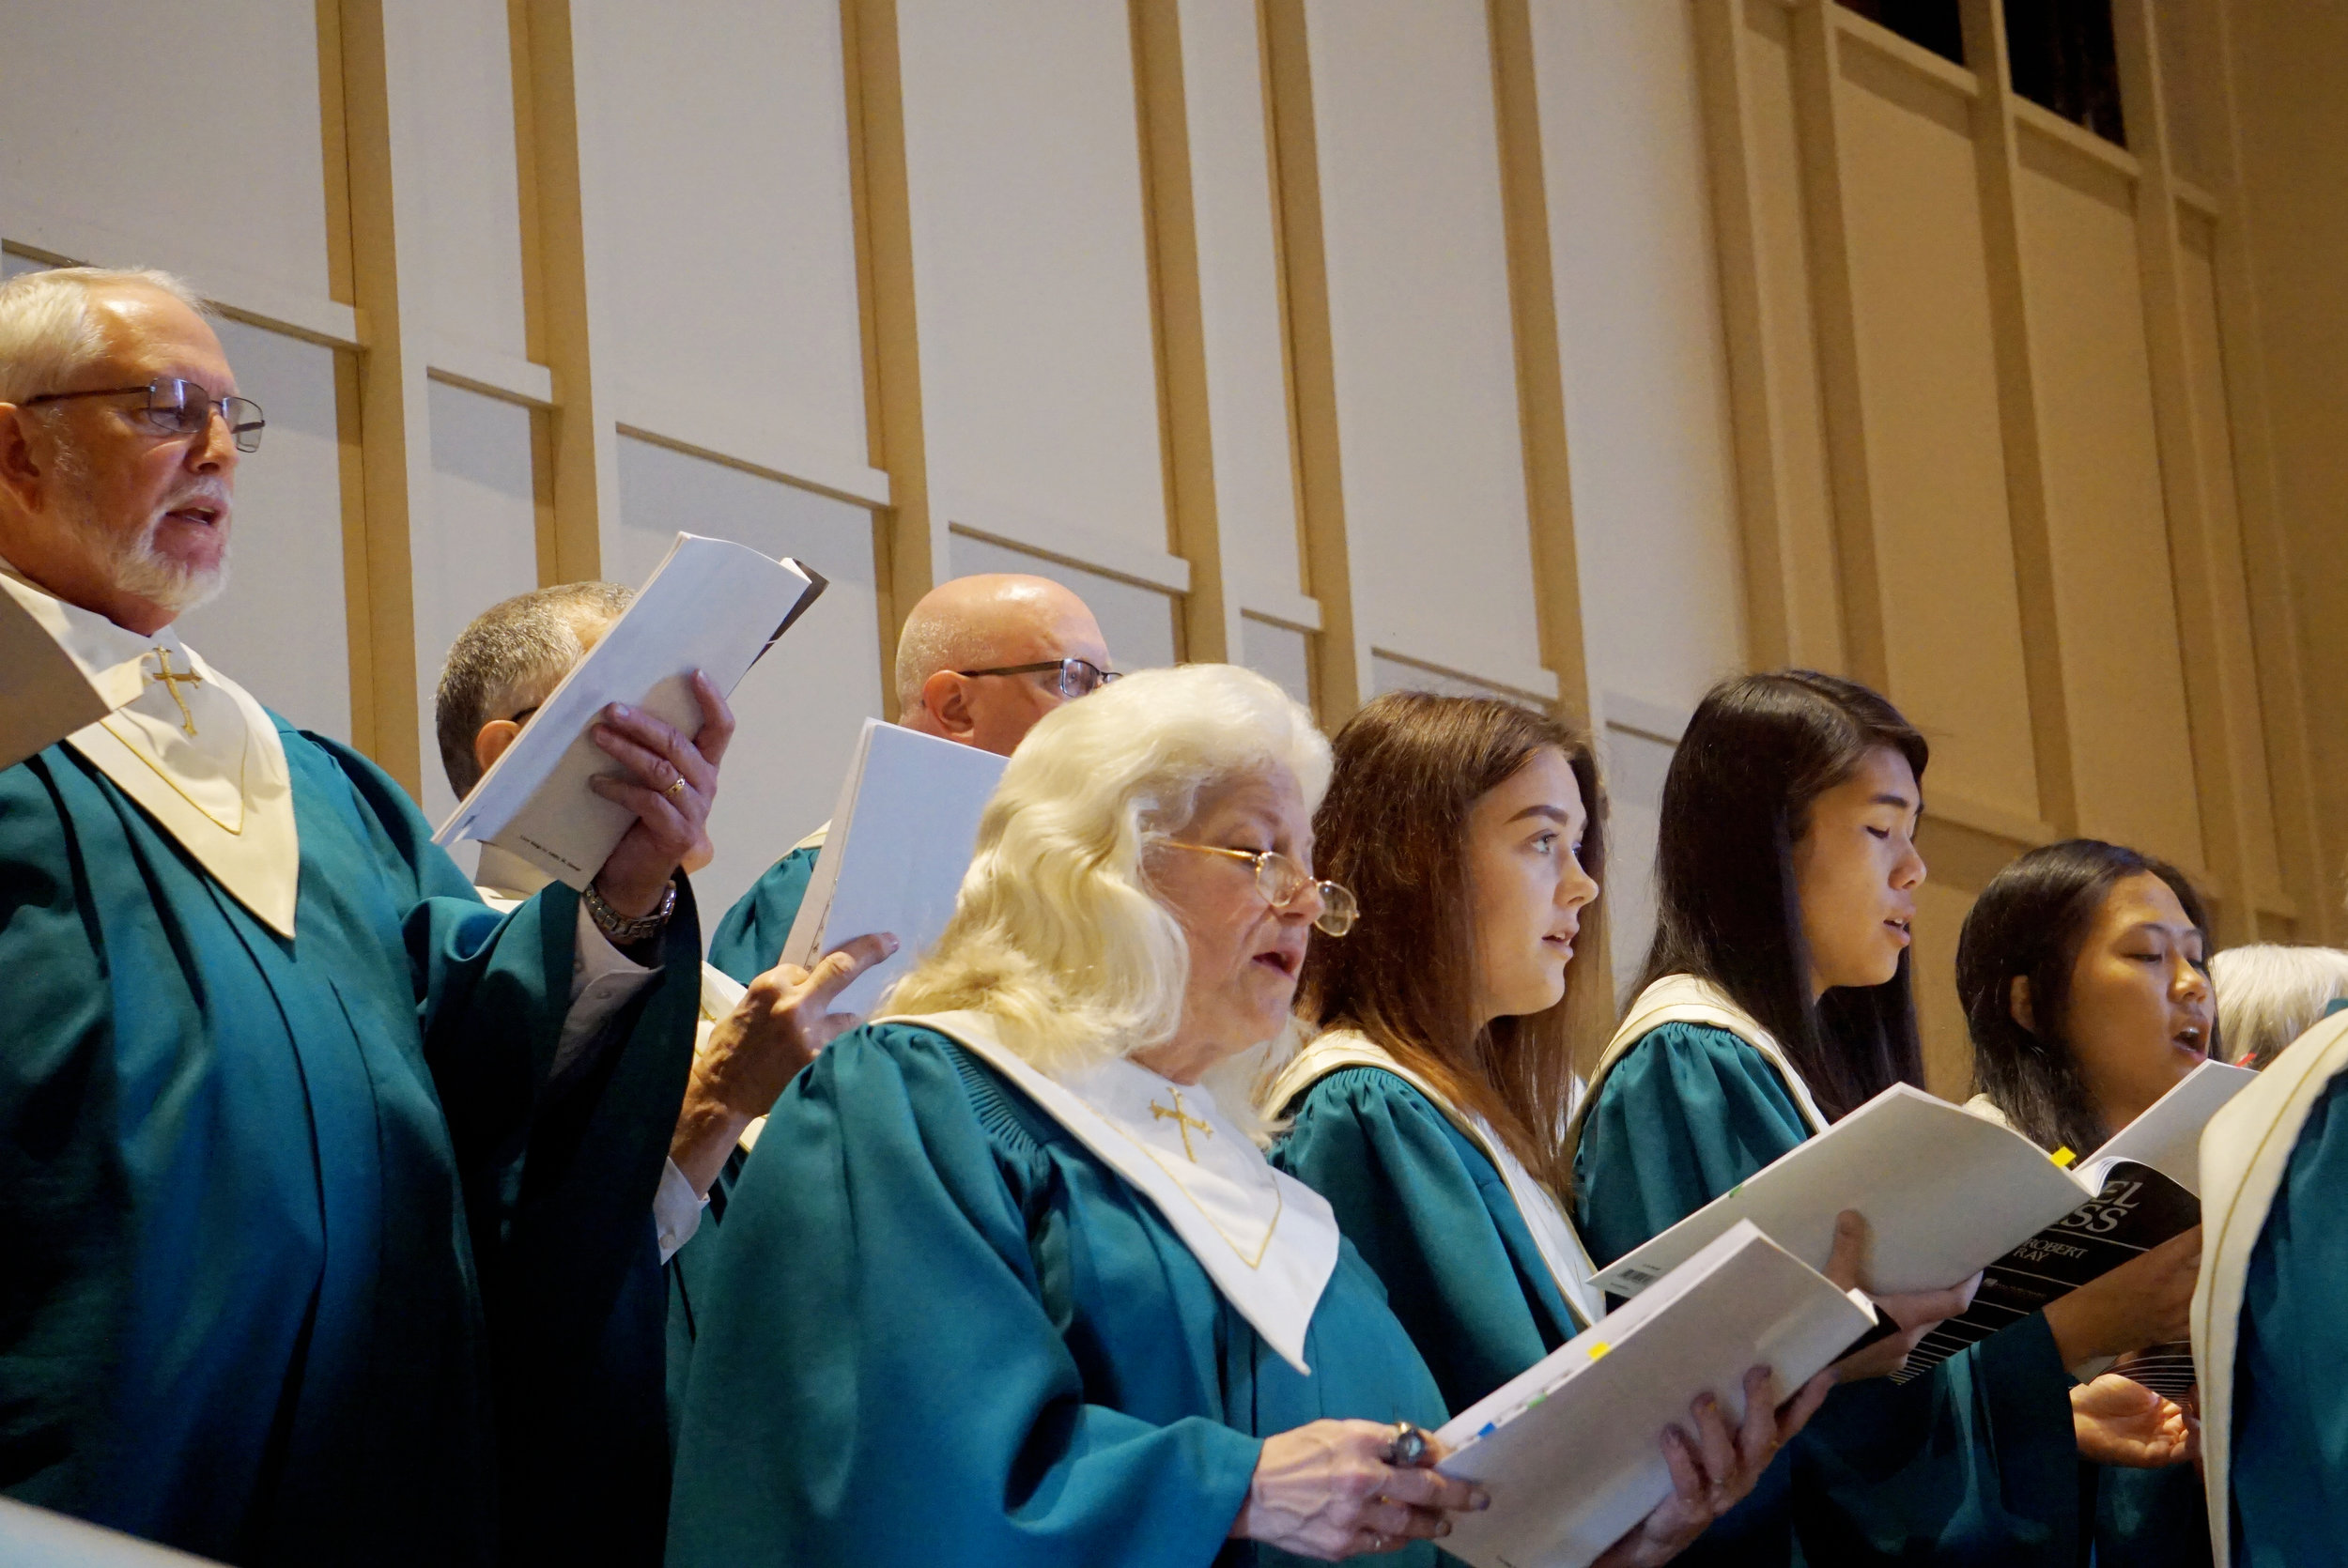 claremont-presbyterian-church-easter-choir-7.jpg